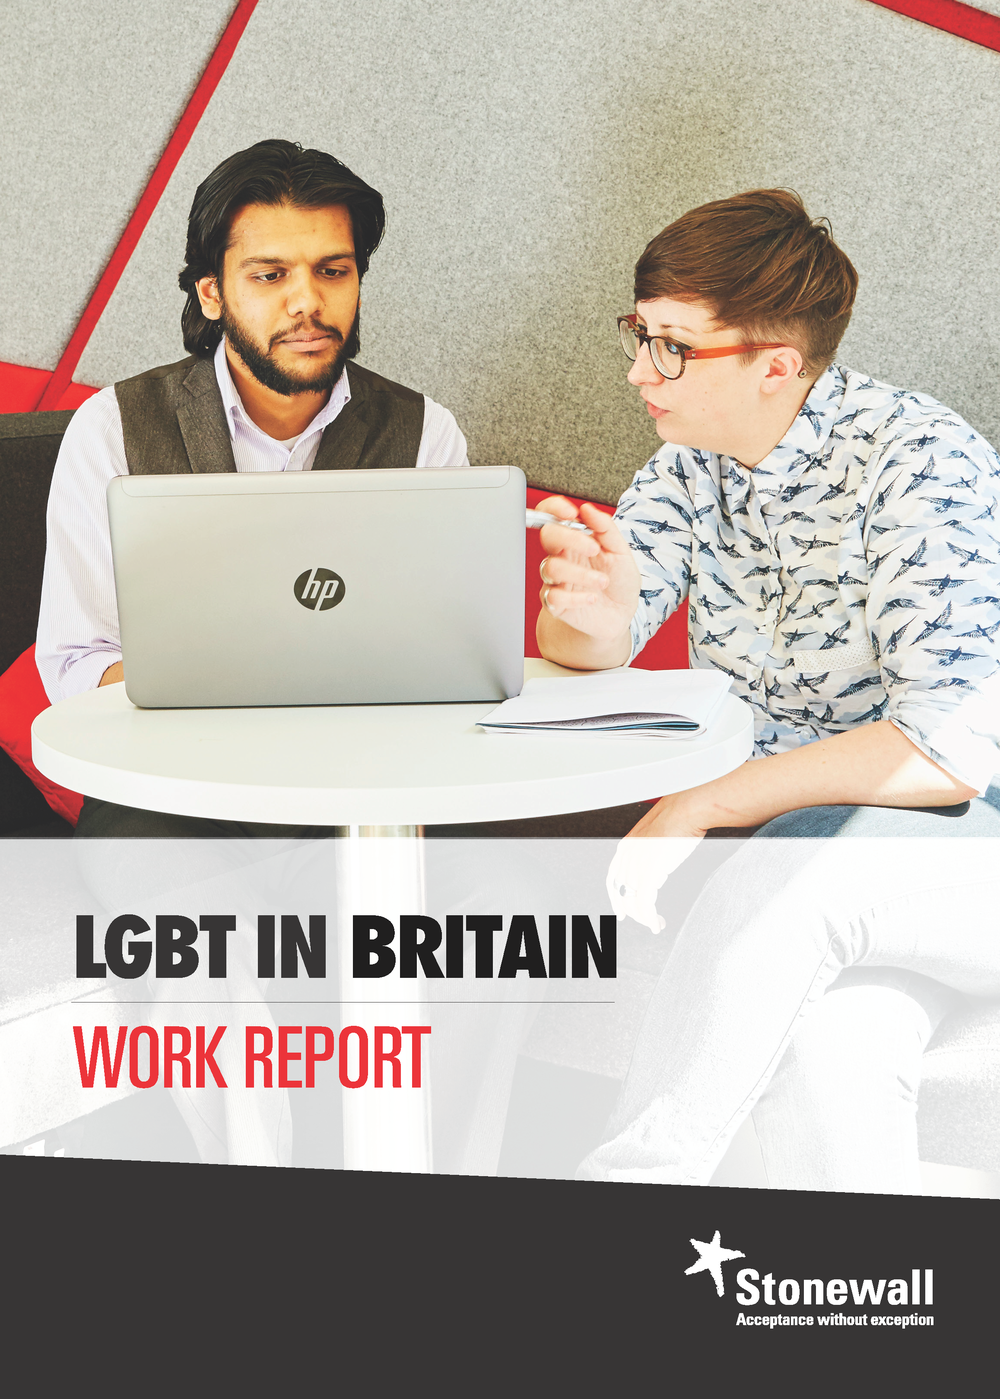 lgbt_in_britain_work_report 1.png